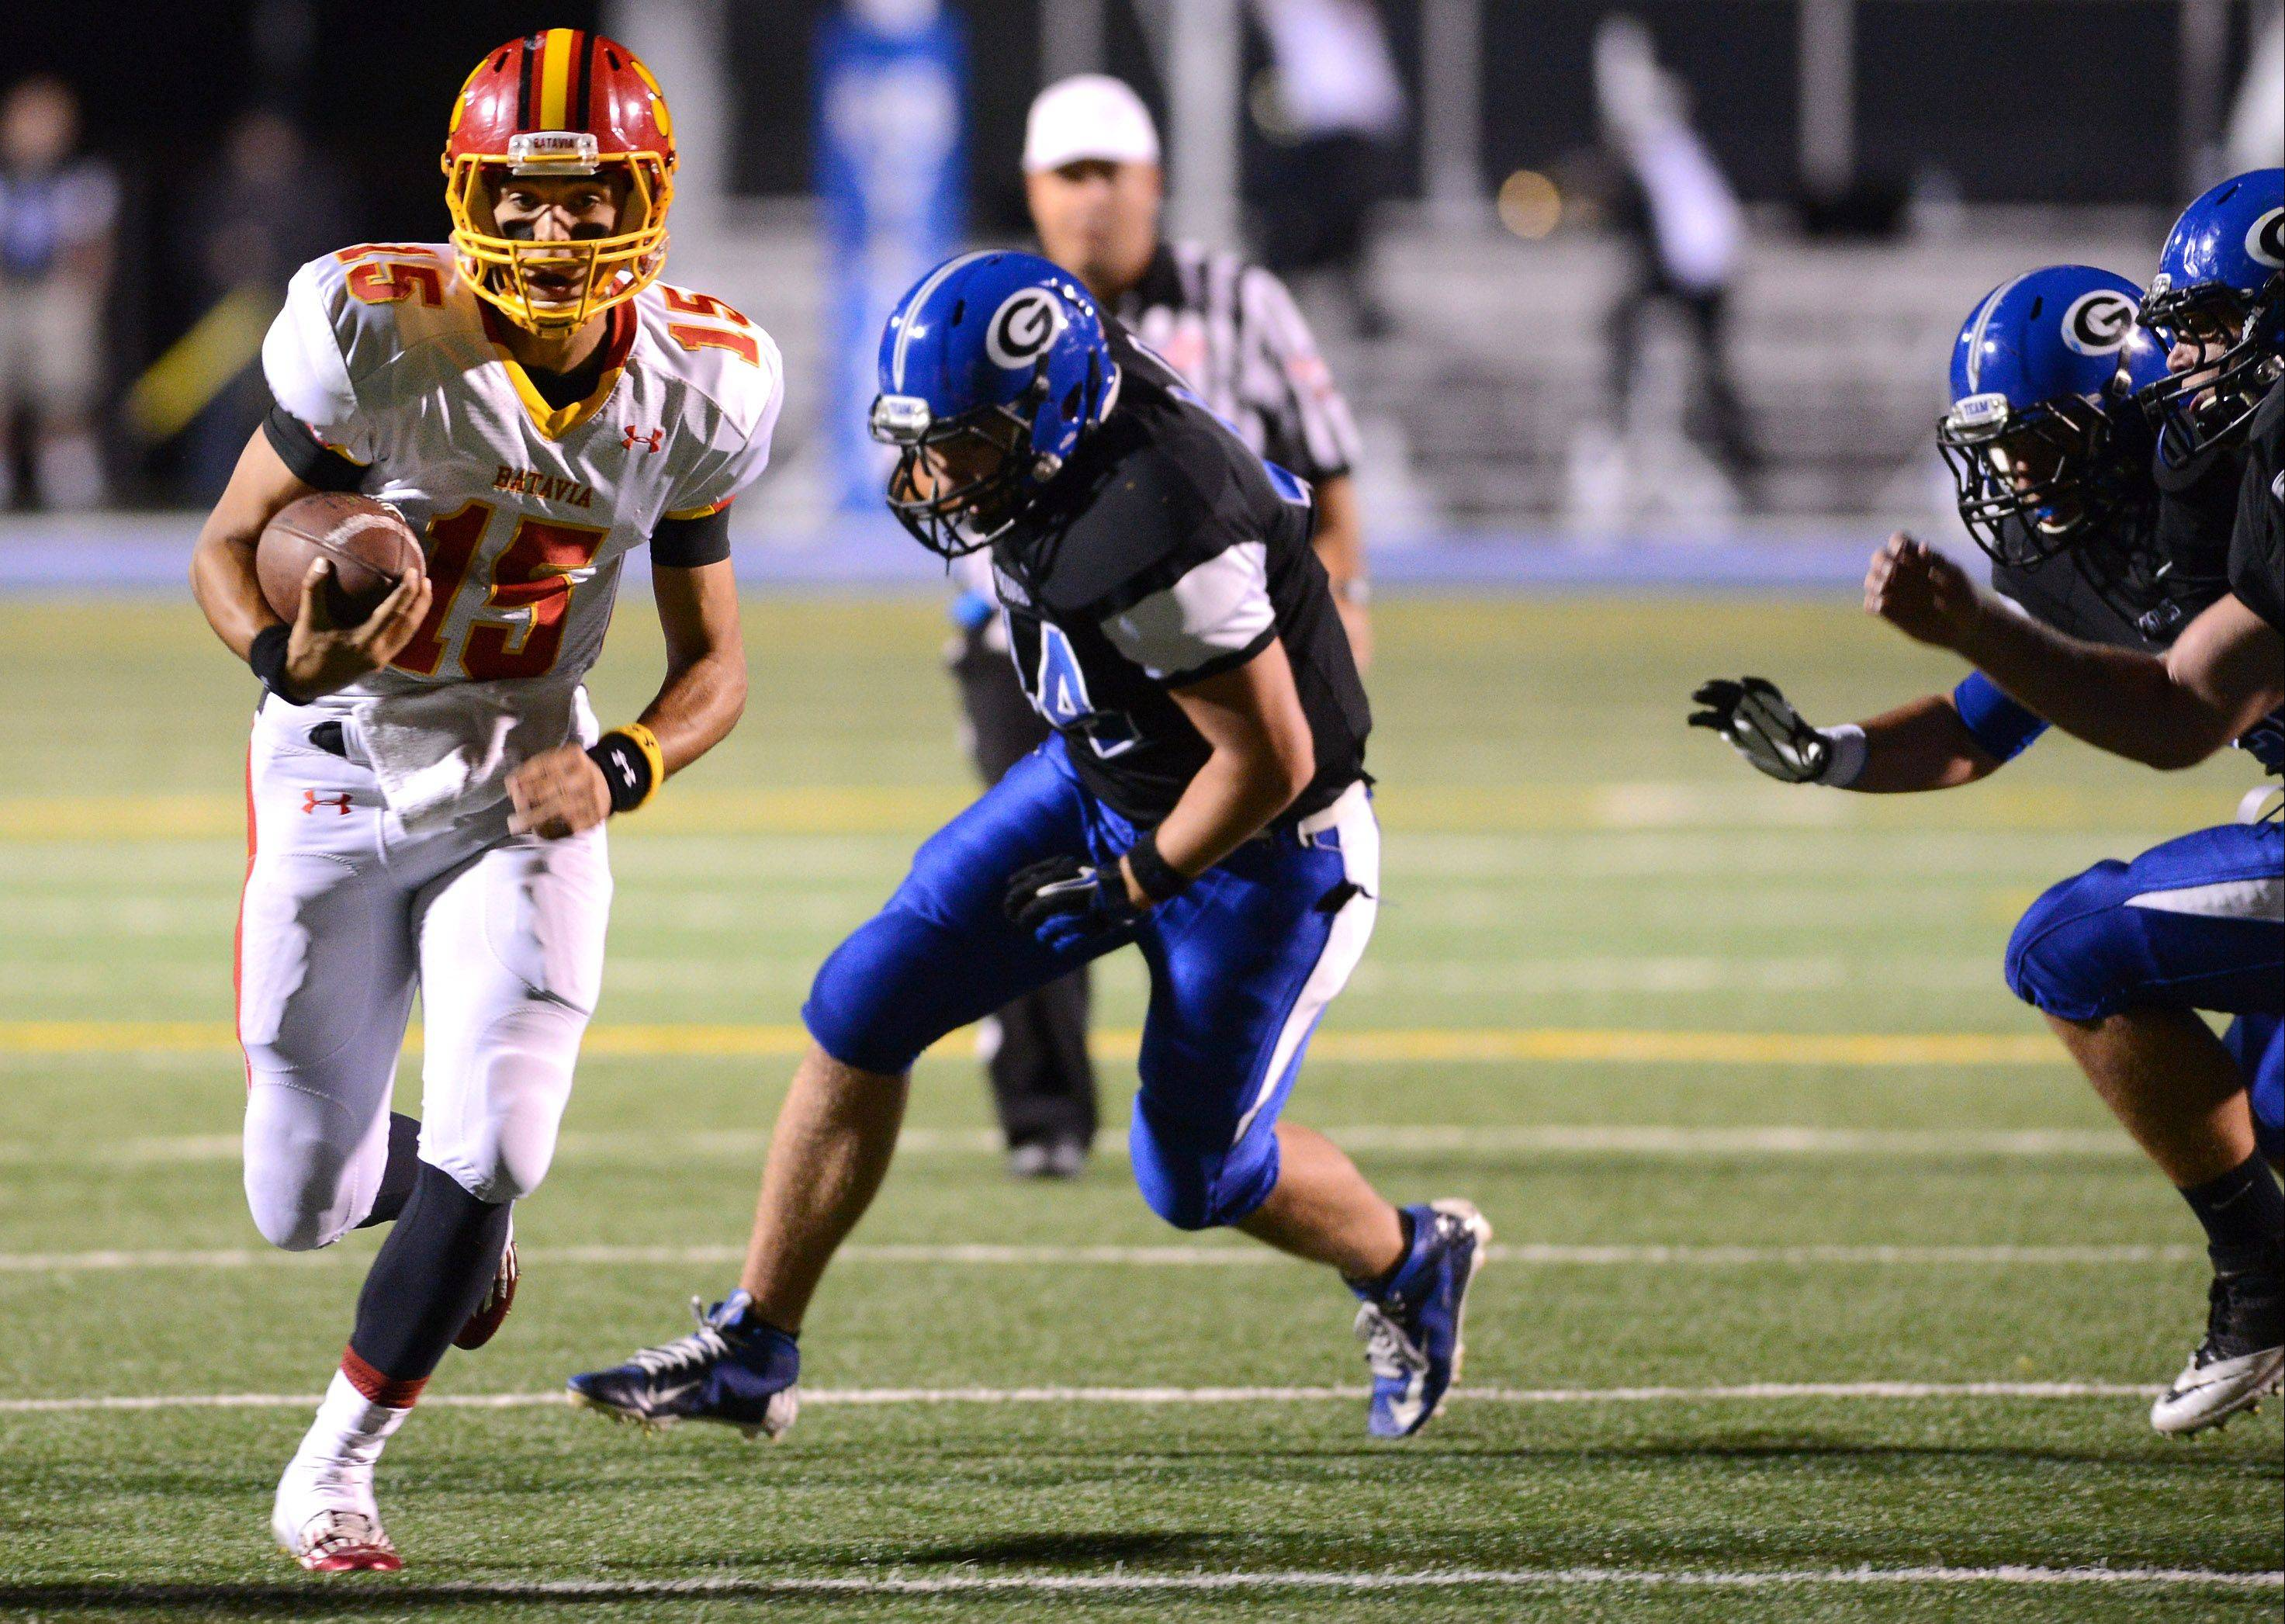 Batavia quarterback Micah Coffey and his teammates gave their fans plenty to cheer about including this play -- one of Coffey's three rushing touchdowns Friday at Geneva.